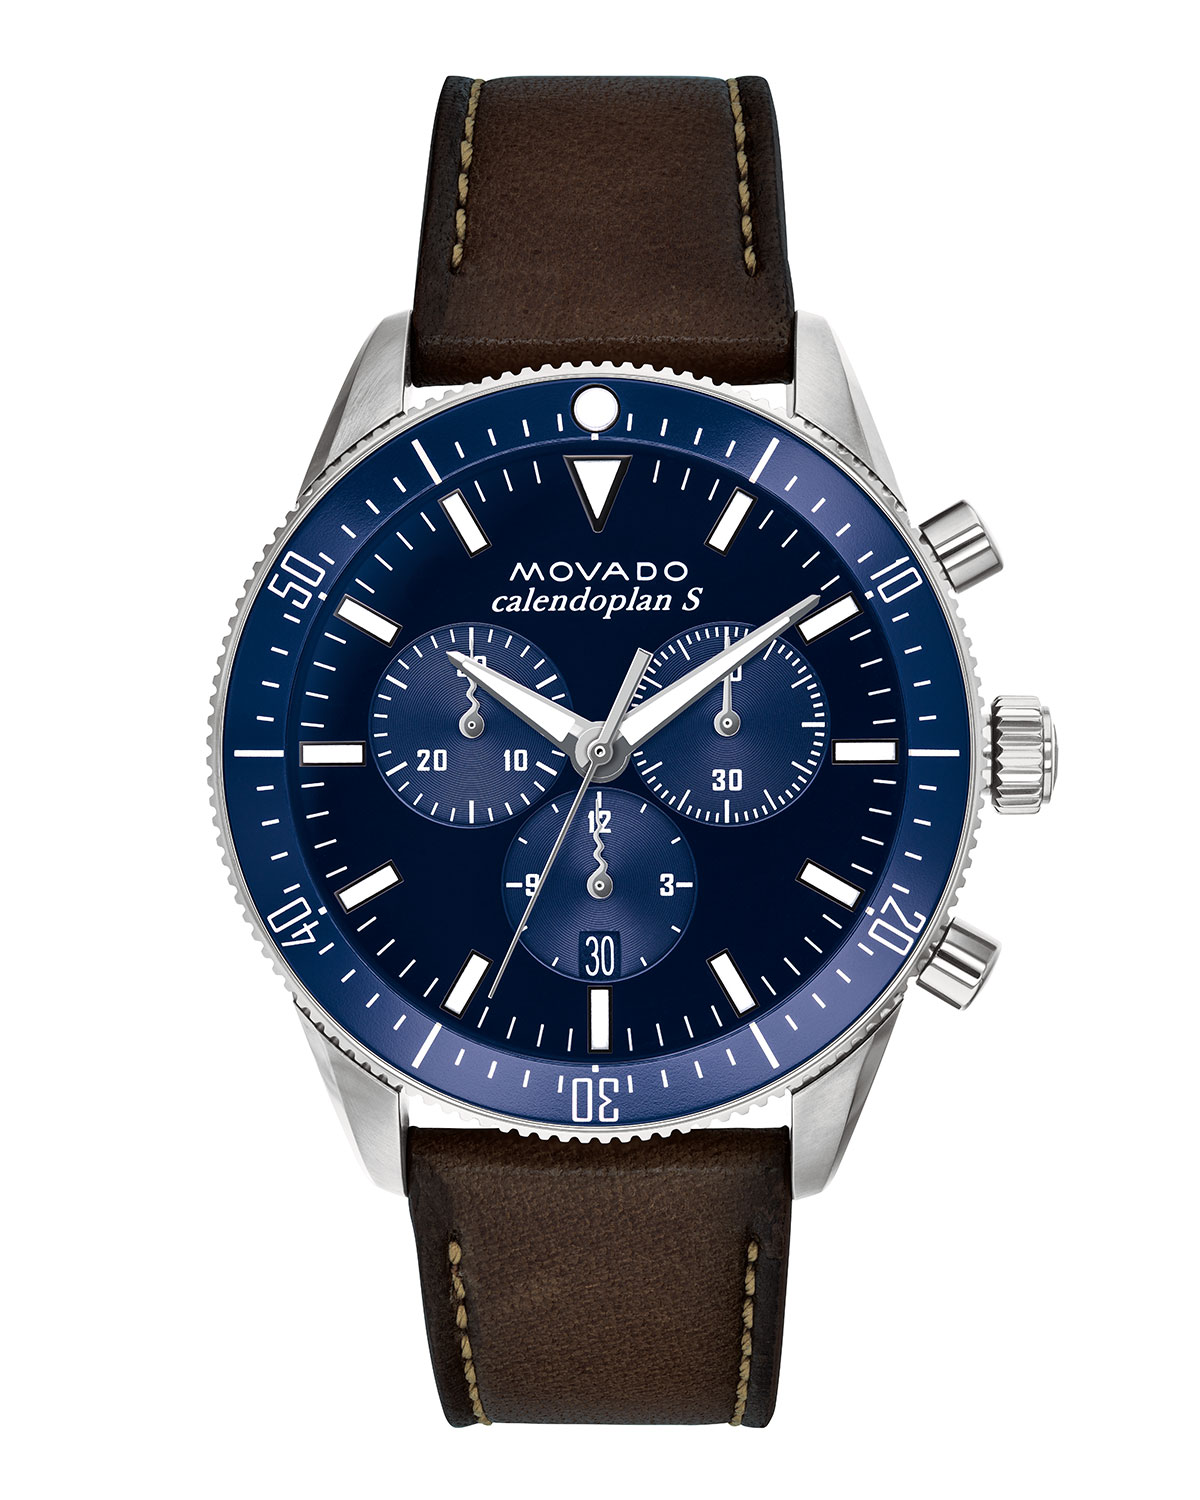 Men's Diver Chronograph Watch with Leather Strap & Blue Dial